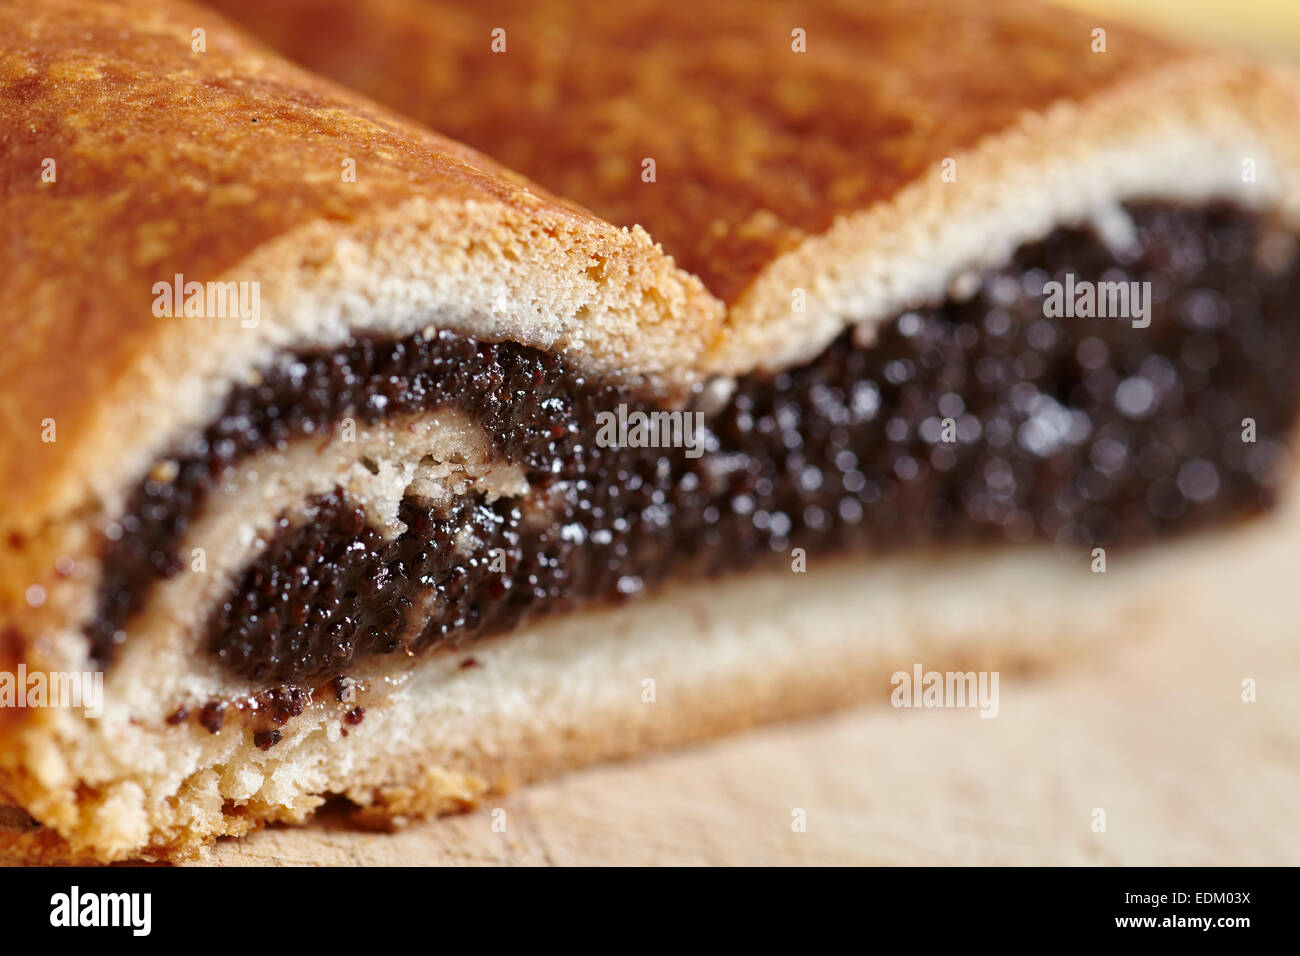 Hungarian Poppyseed roll, a traditional cake in NYC area bake shops. - Stock Image